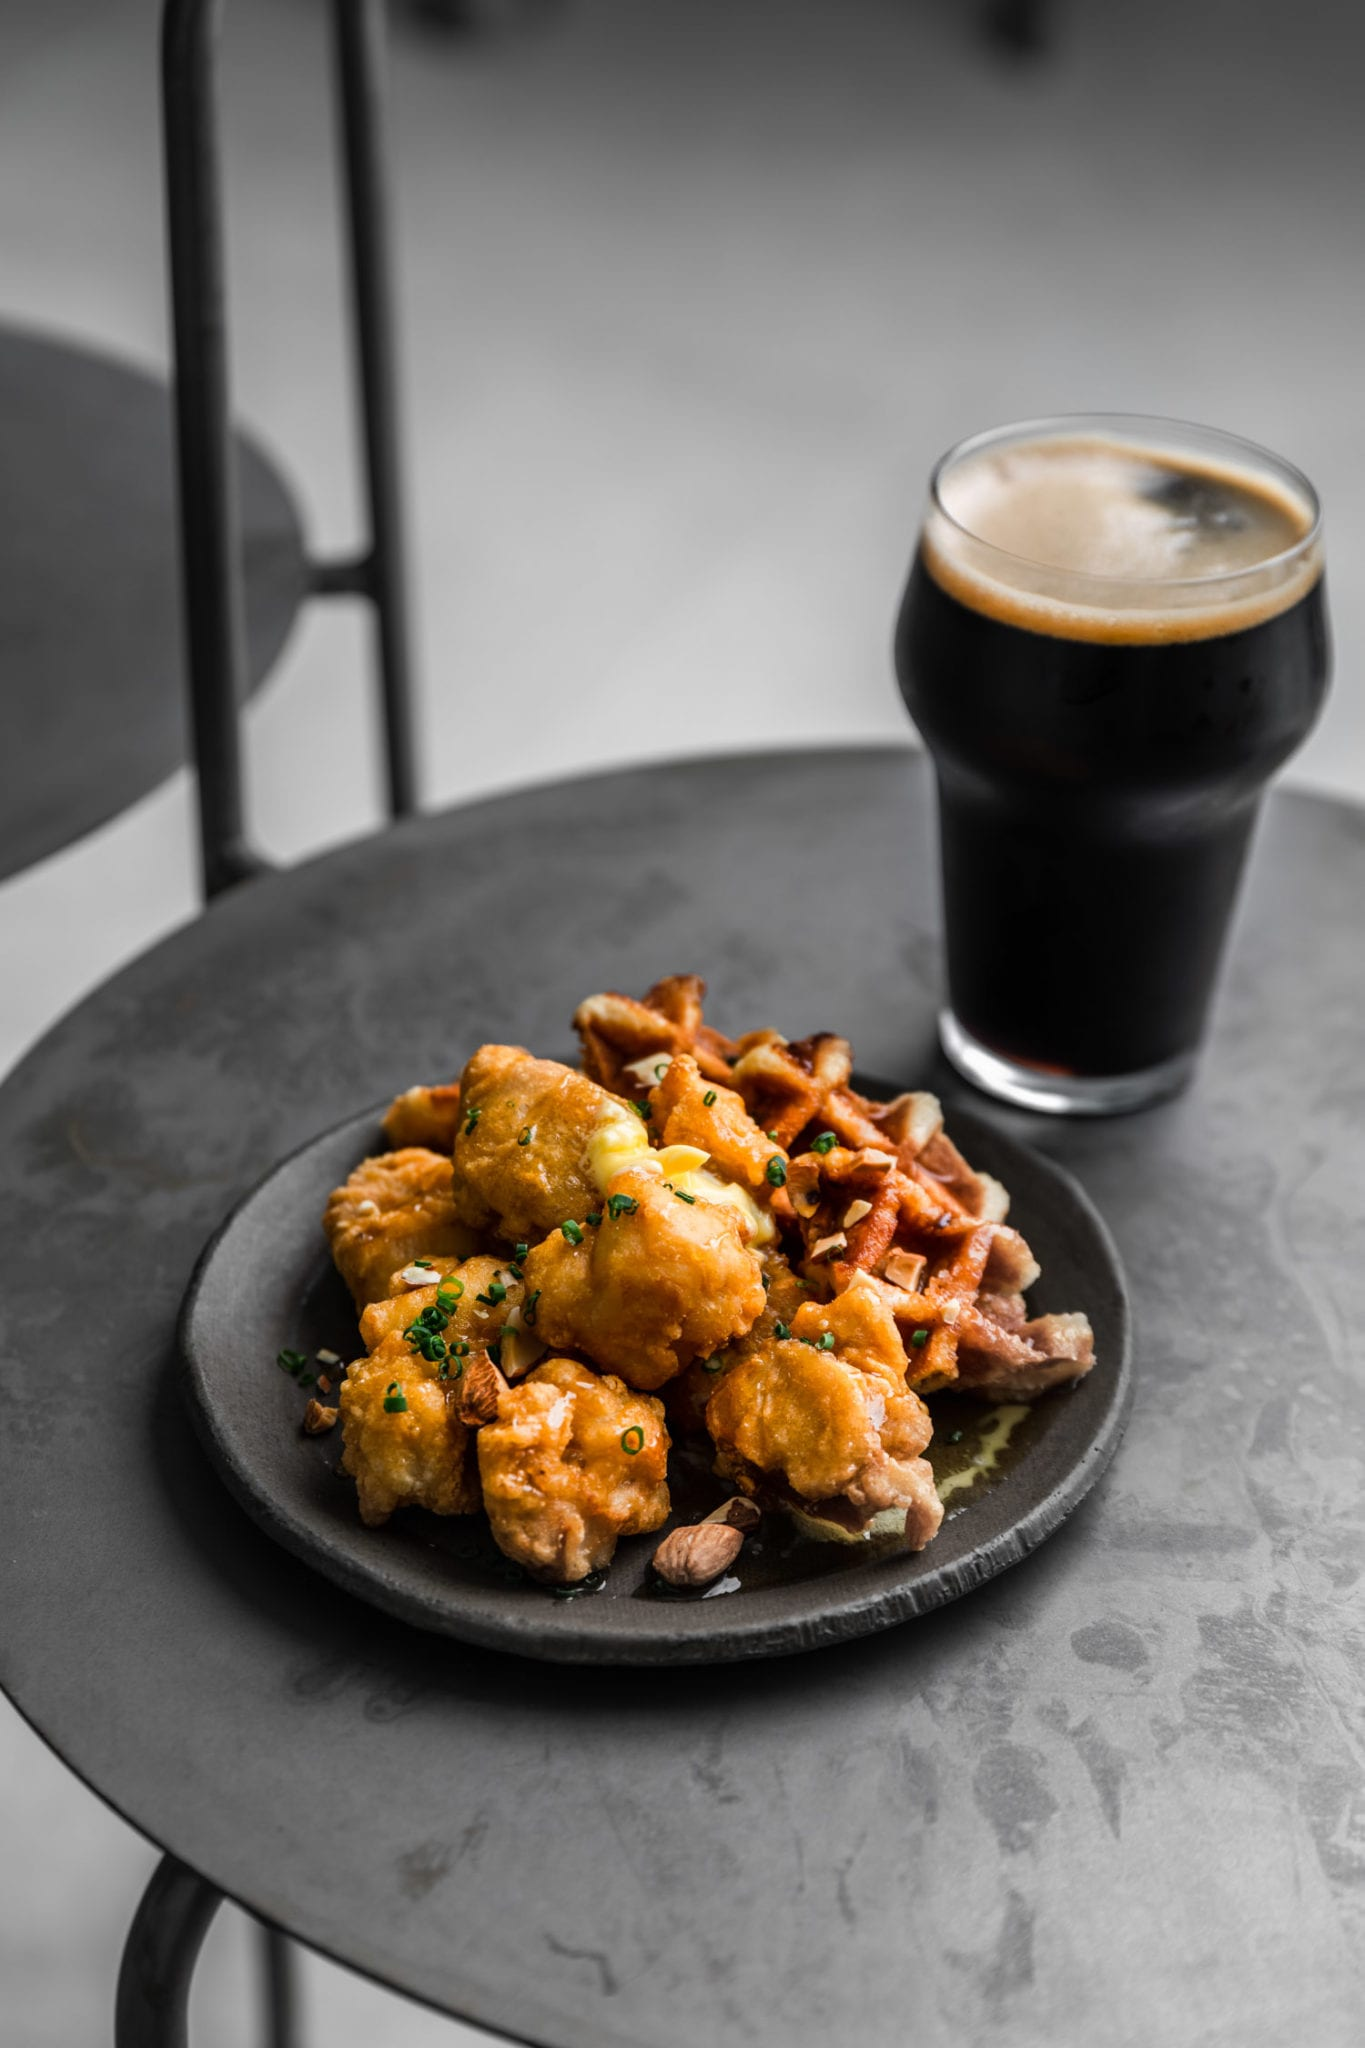 fried chicken and stout beer